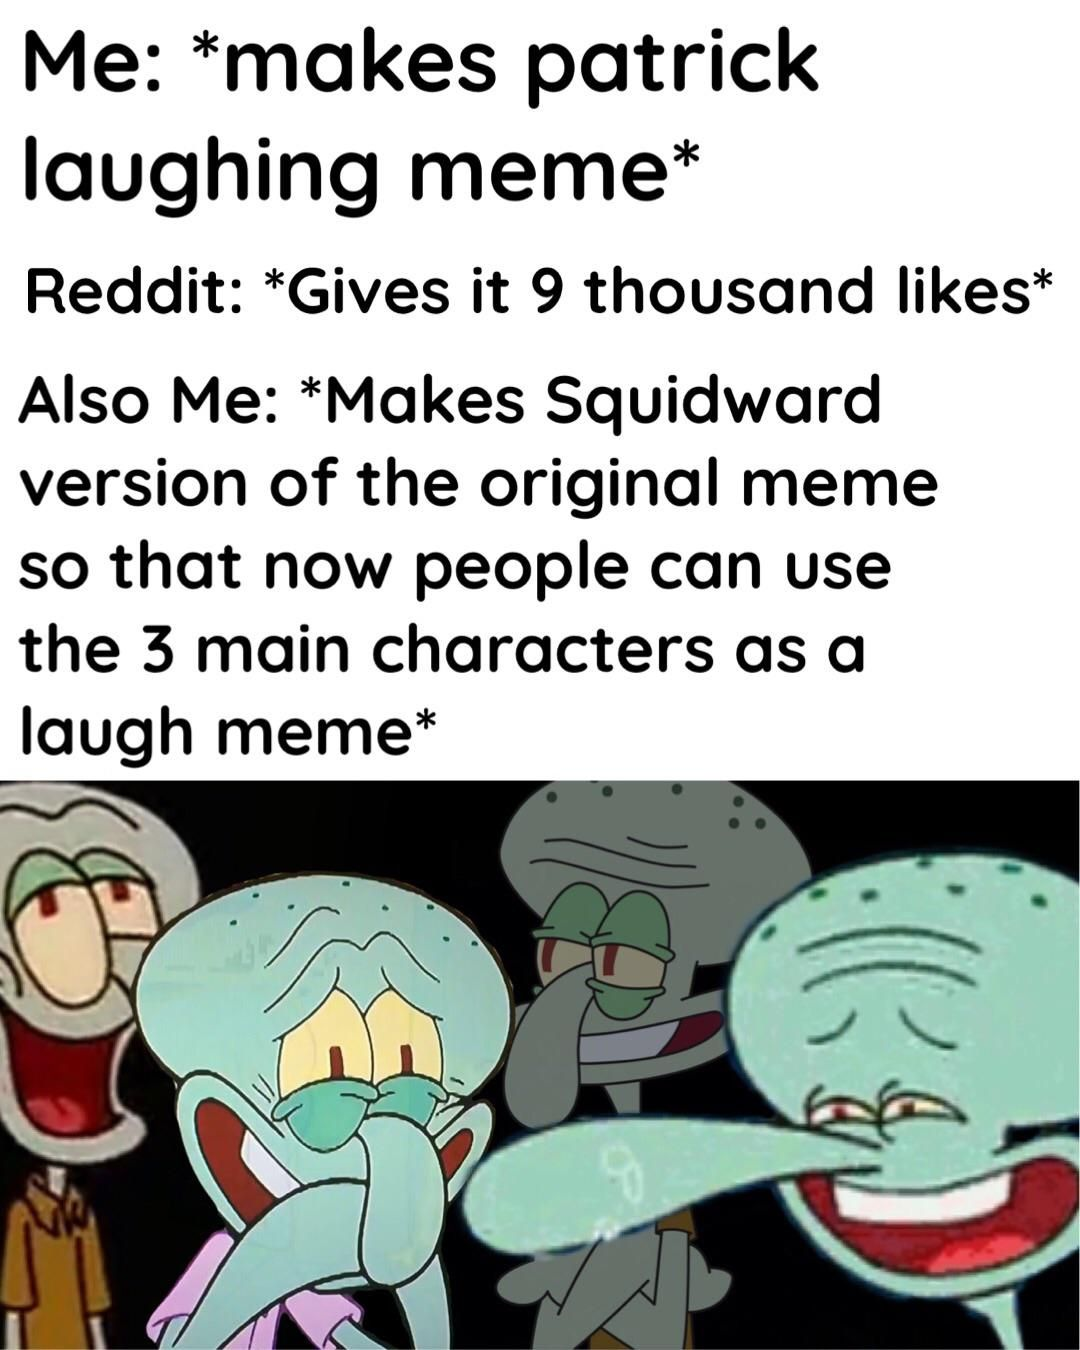 I Made It To The Hot Page With My Patrick Meme So Imma Overuse My Power With A New Version Of The M Laugh Meme Memes Patrick Meme